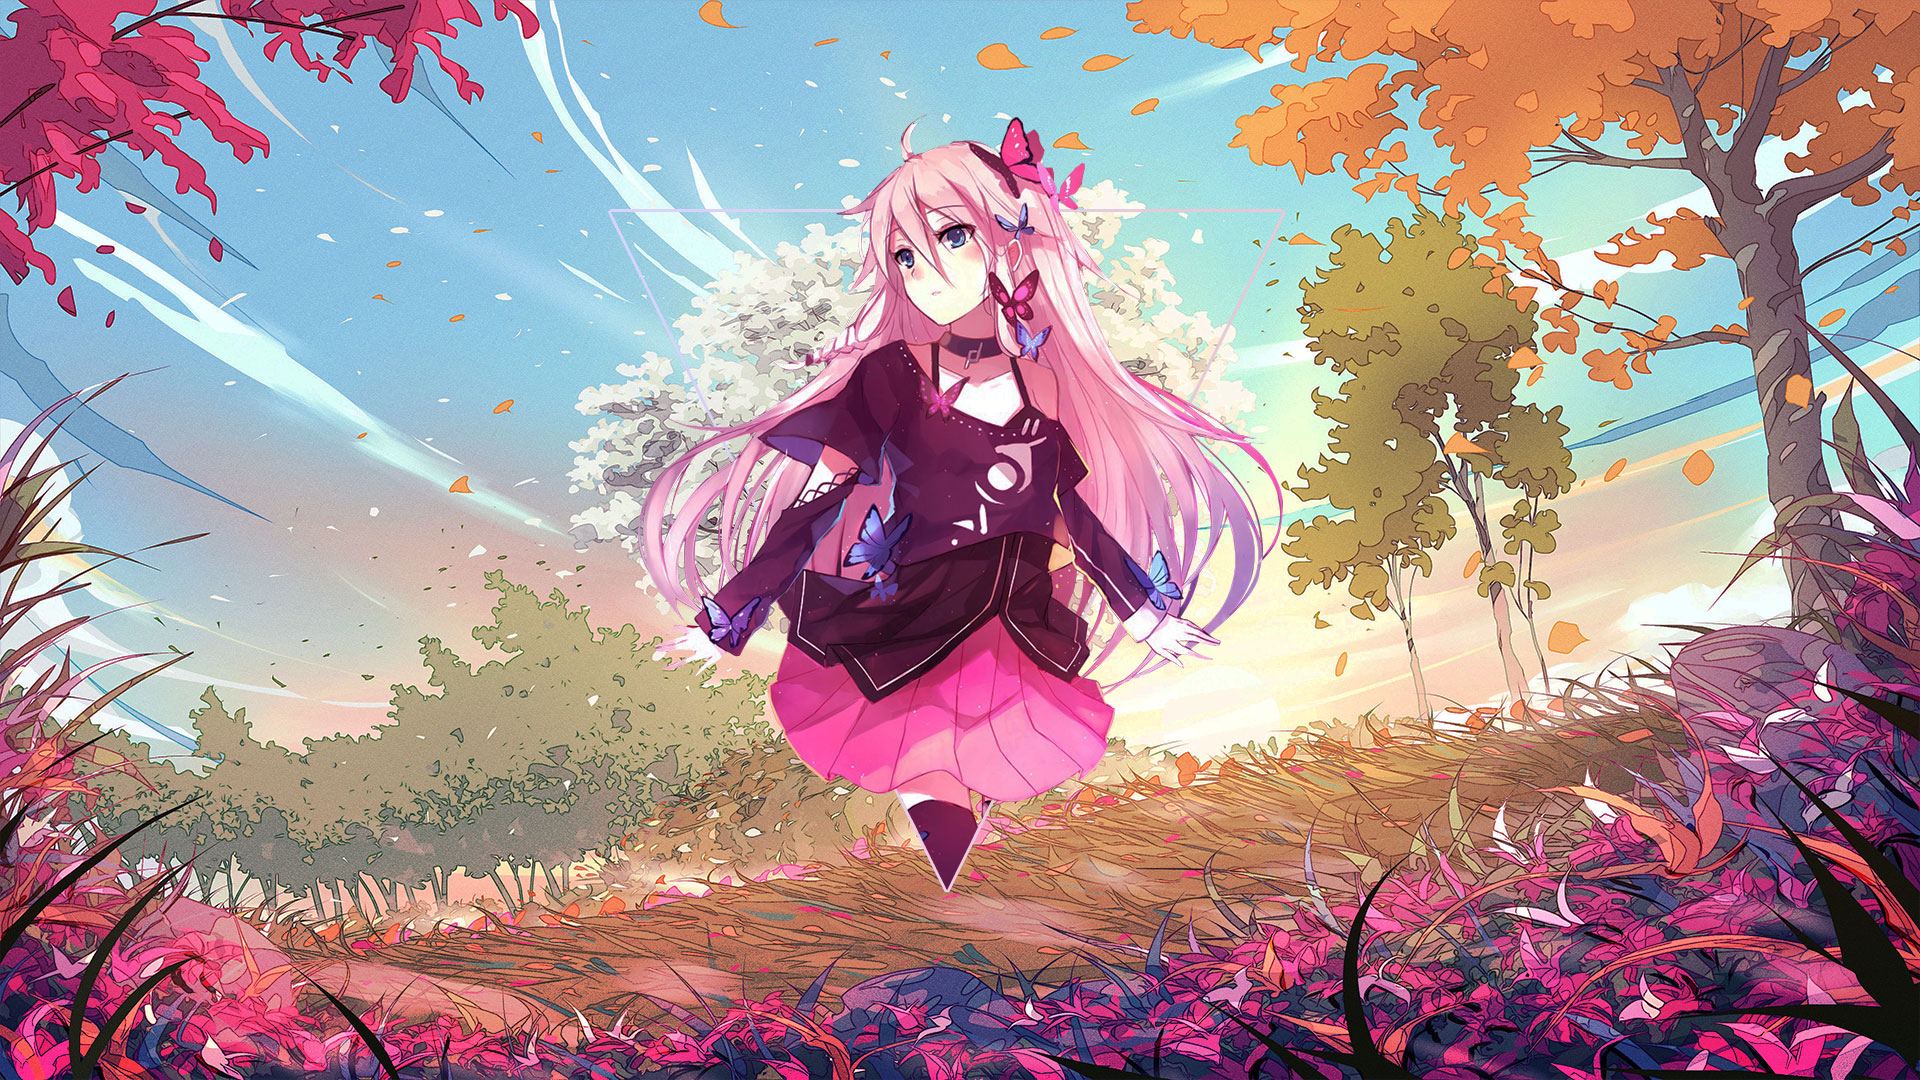 Anime Anime Girls Rose Landscape Picture In Picture Photoshop Triangle Abstract Metalanguage Digital 1920x1080